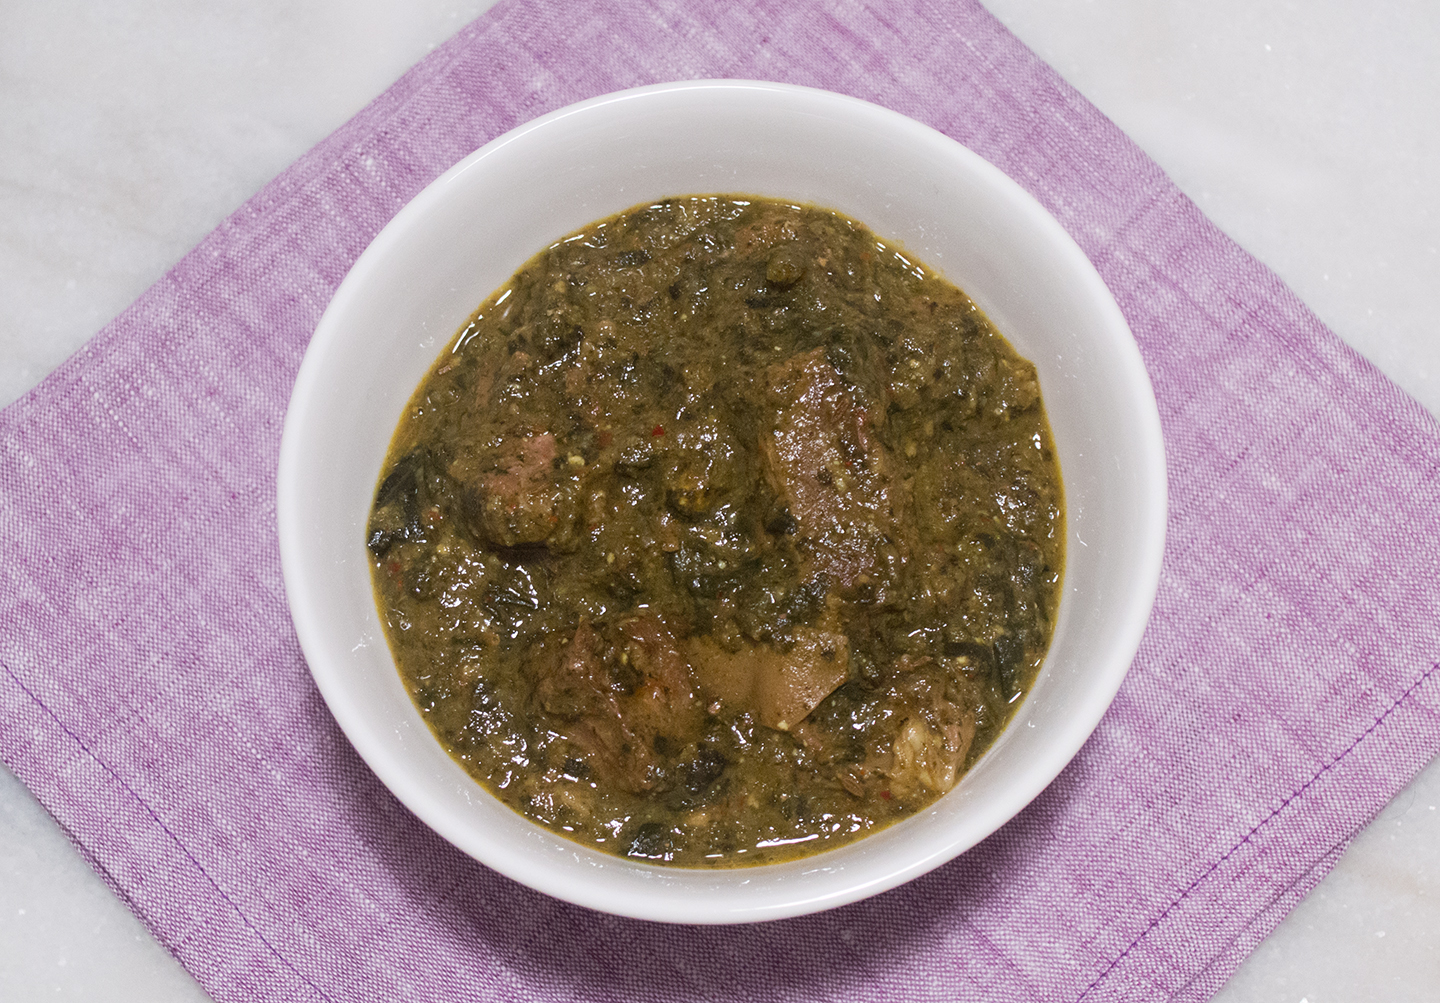 Saag Gosht - Indian Spinach Dish with Meat